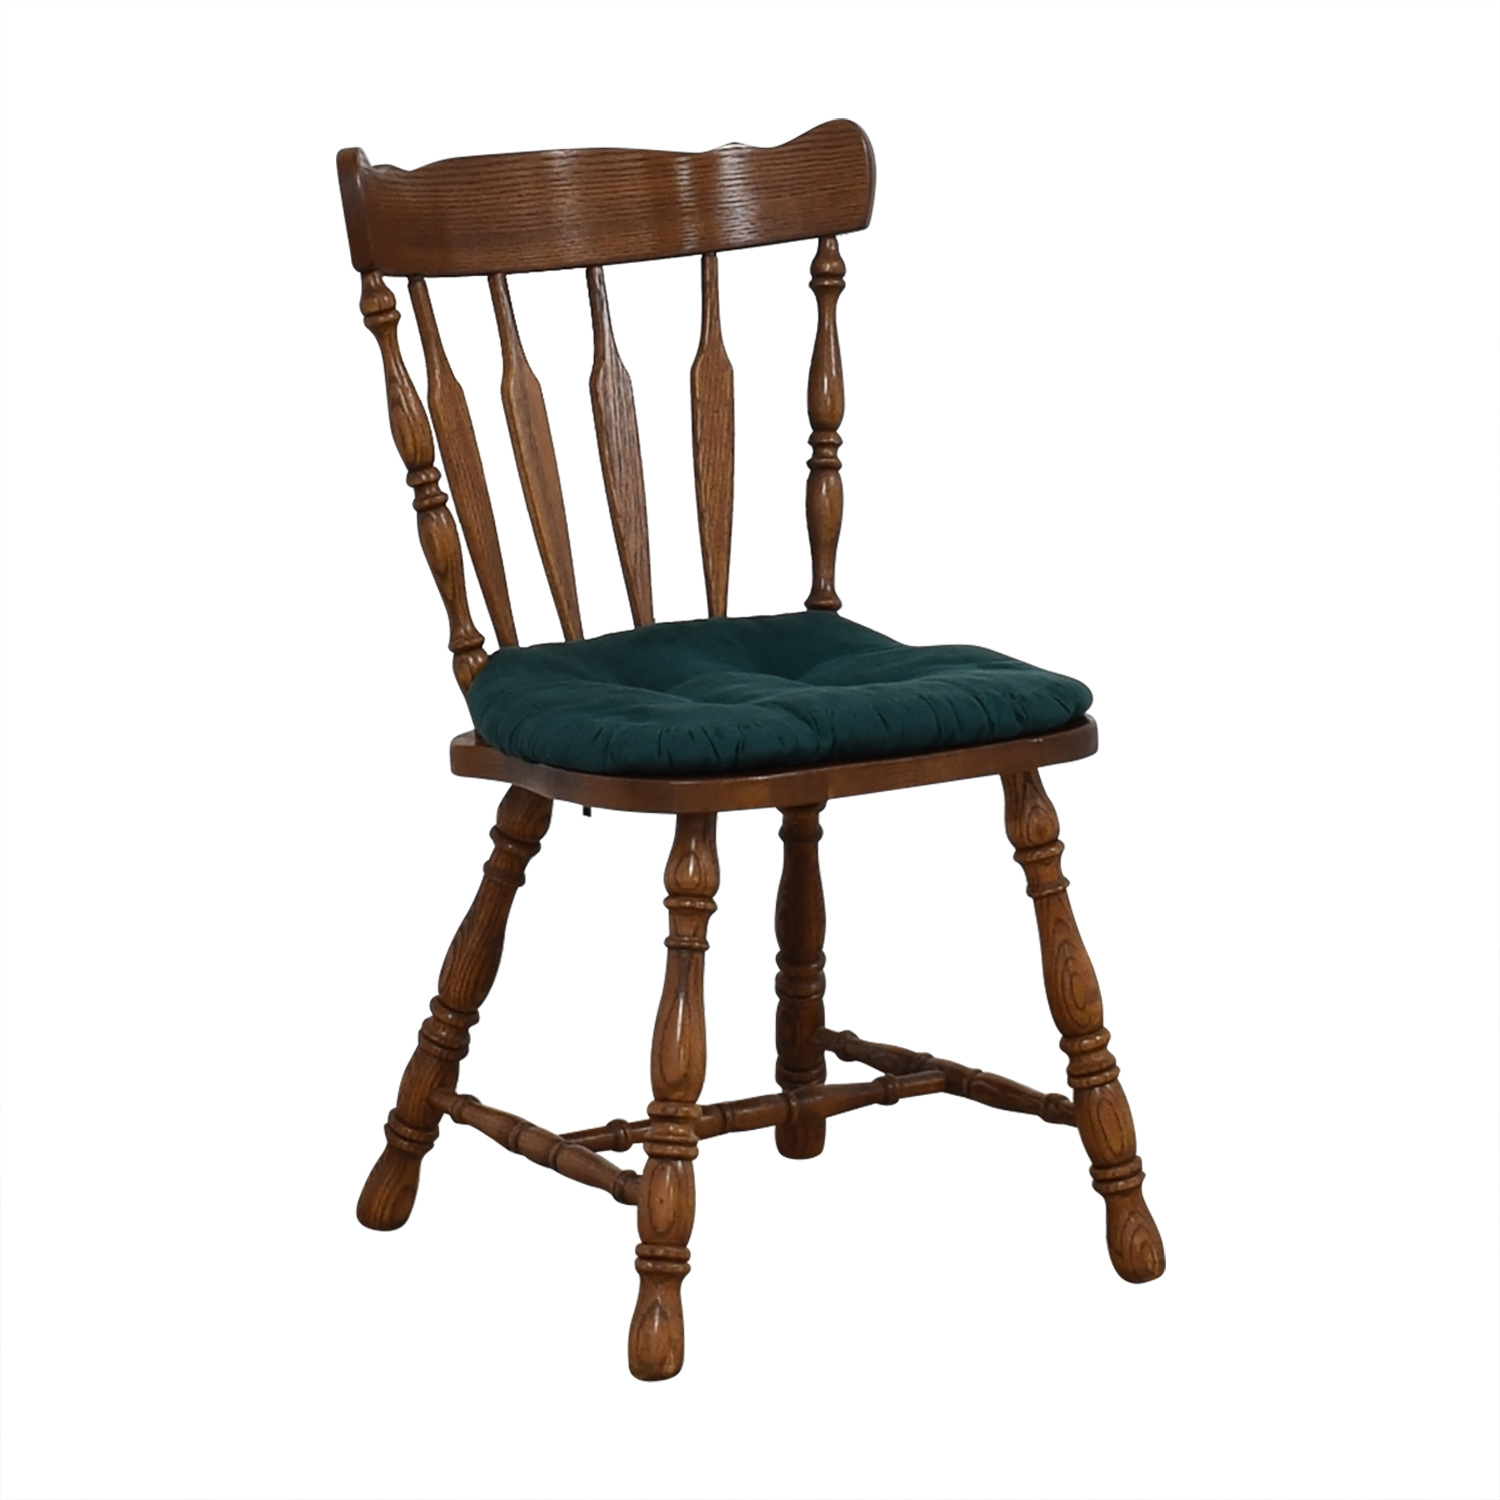 Wood Chair with Teal Cushion discount